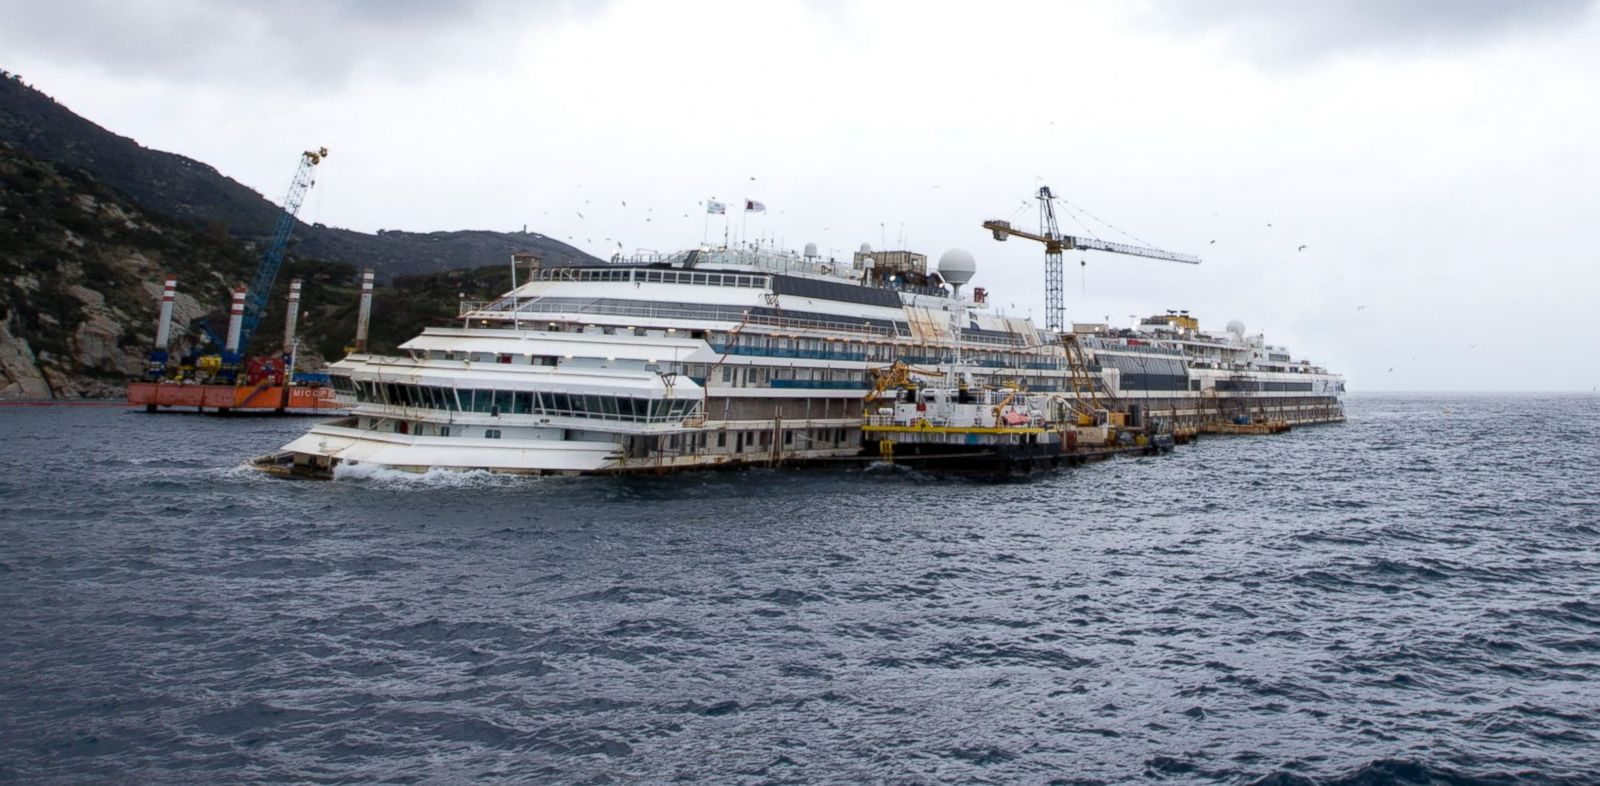 PHOTO: The wreck of the Costa Concordia cruise ship is seen from a ferry boat approaching Tuscan Island of Giglio, Feb. 26, 2014.